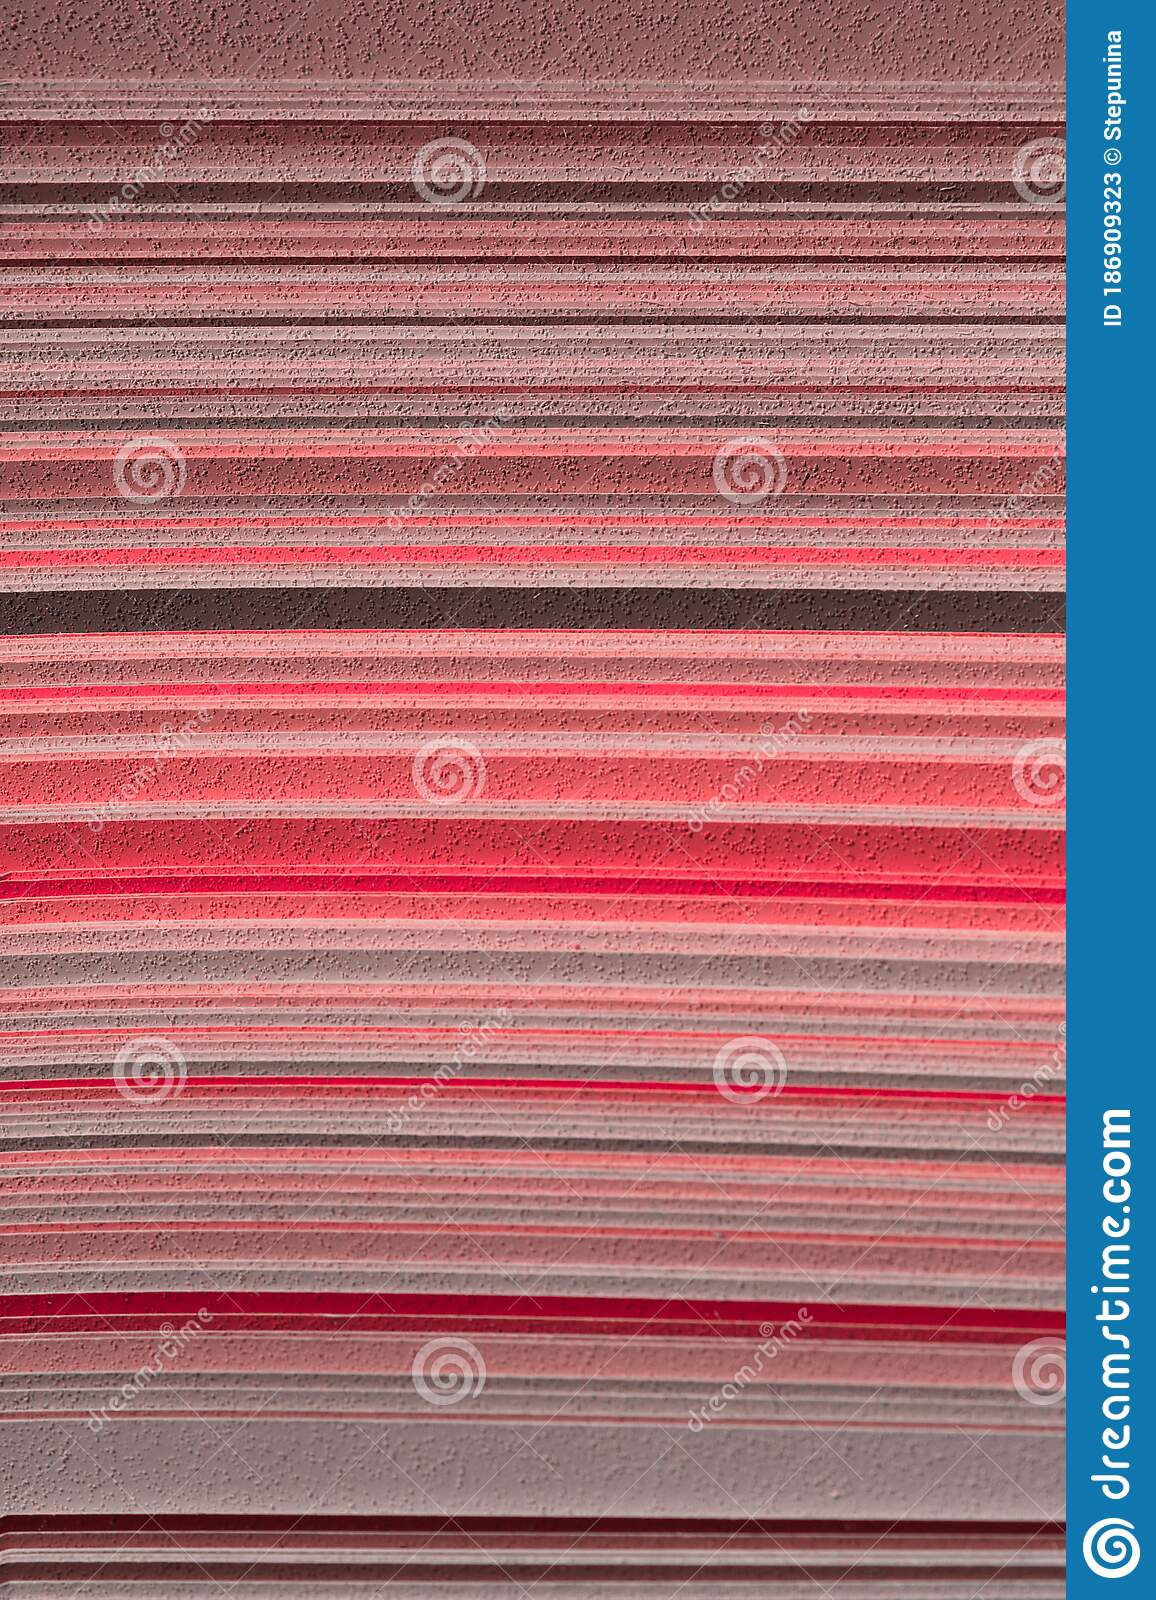 Blurry Image Of Abstract Texture Background Red Colors Palette Of Red Shades Stock Image Image Of Line Geometric 186909323